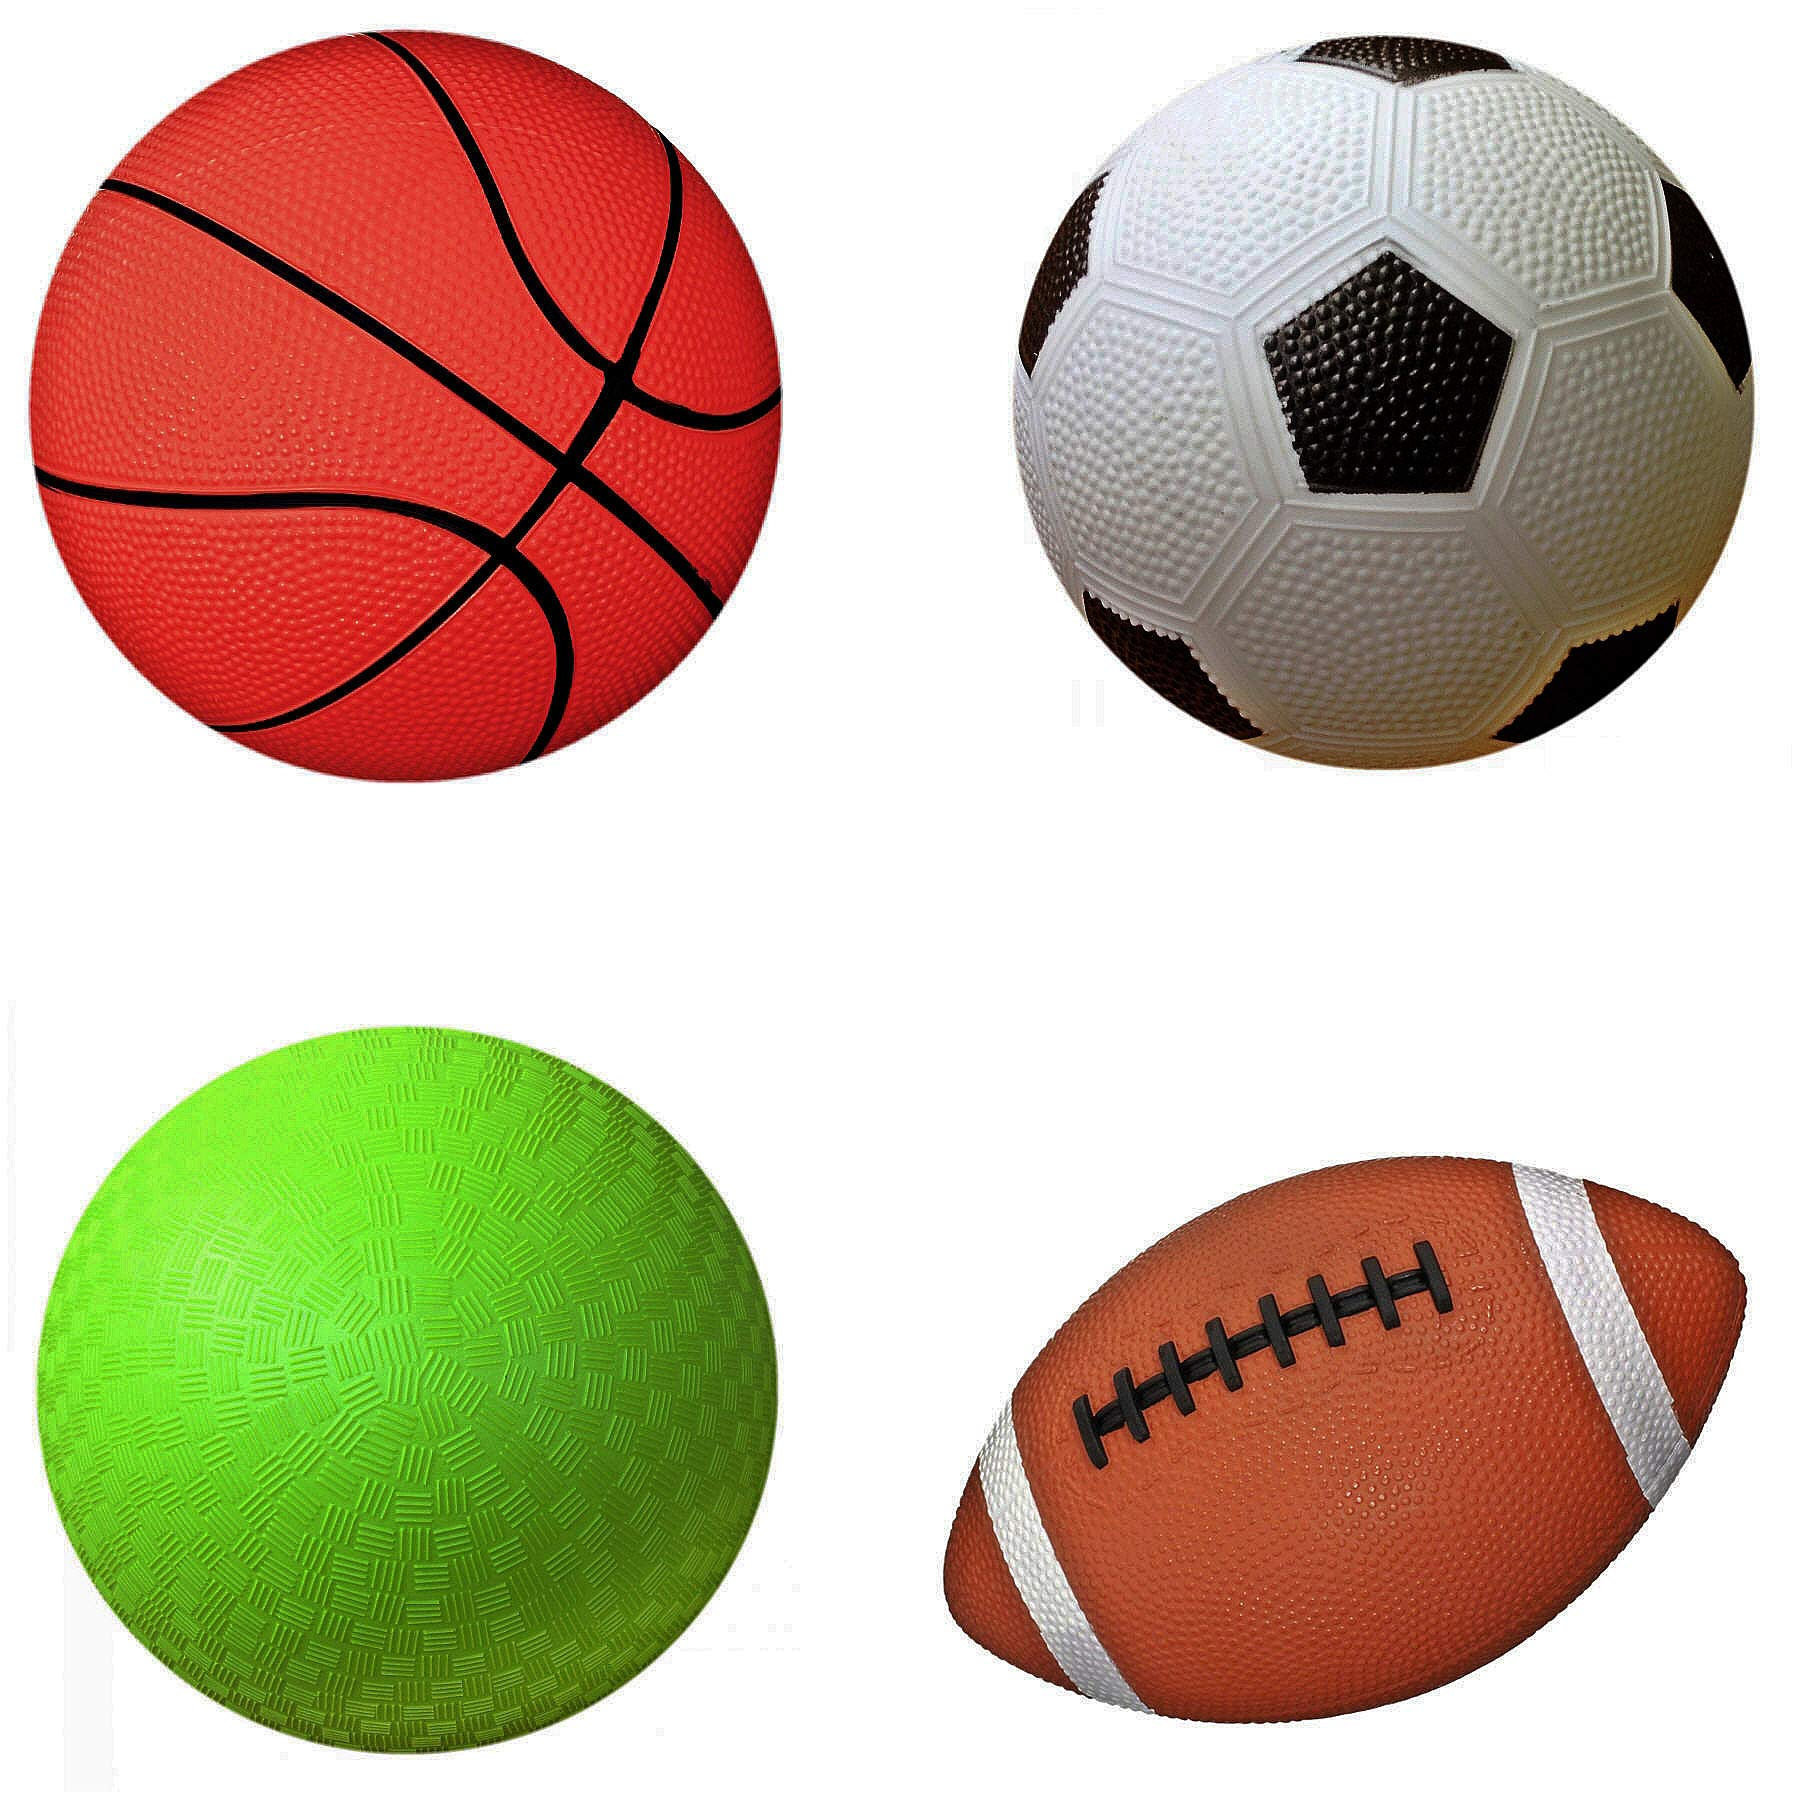 AppleRound Pack of 4 Sports Balls with 1 Pump: 1 Each of 5'' Soccer Ball, 5'' Basketball, 5'' Playground Ball, and 6.5'' Football (2-Pack, 8 Balls+2 Pumps) by AppleRound